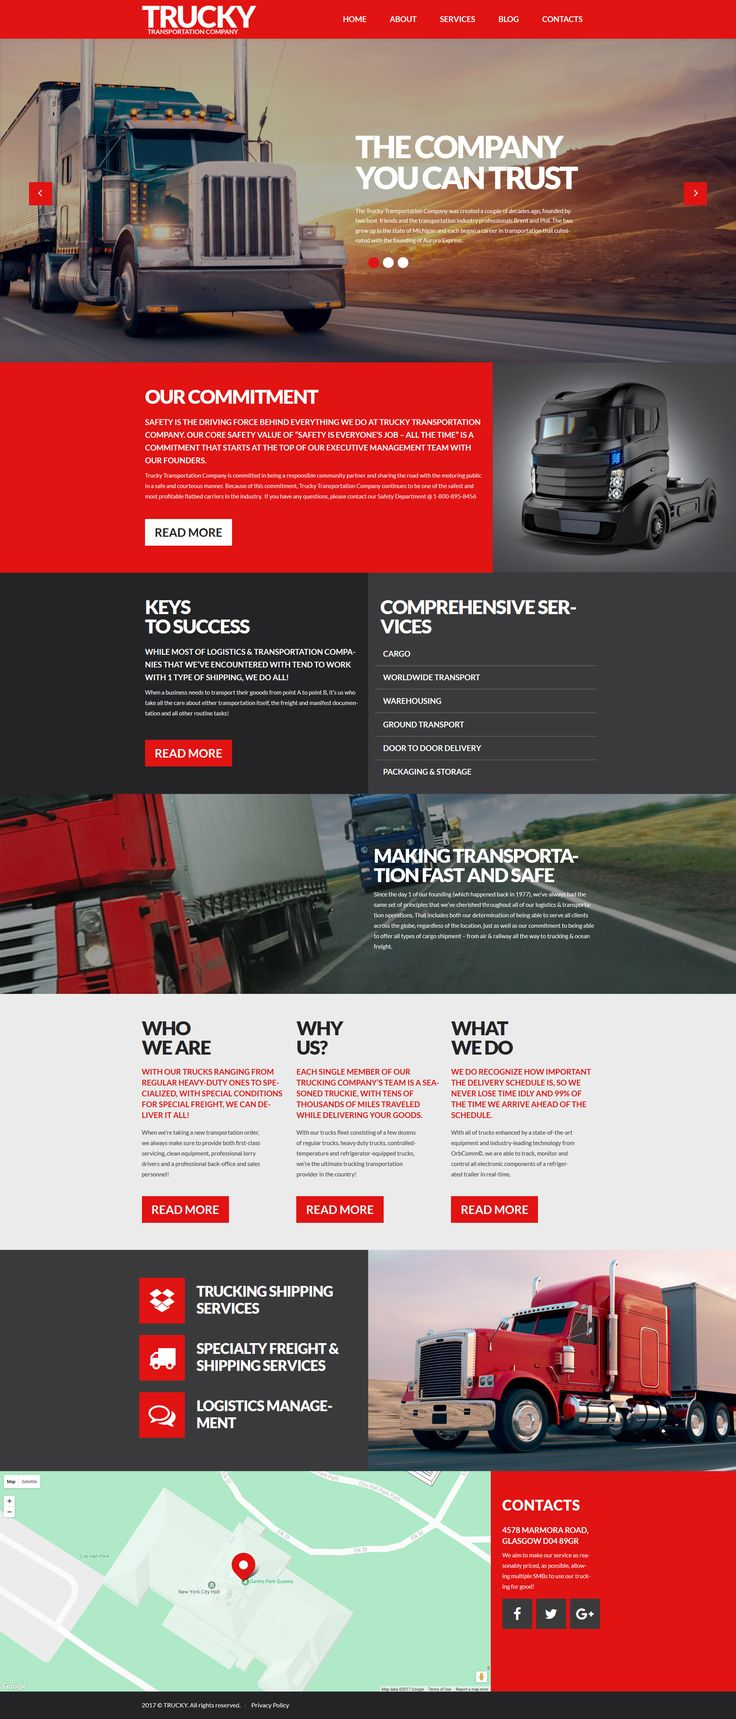 Buy this responsive logistics wp theme to build a functional business website and boost profit